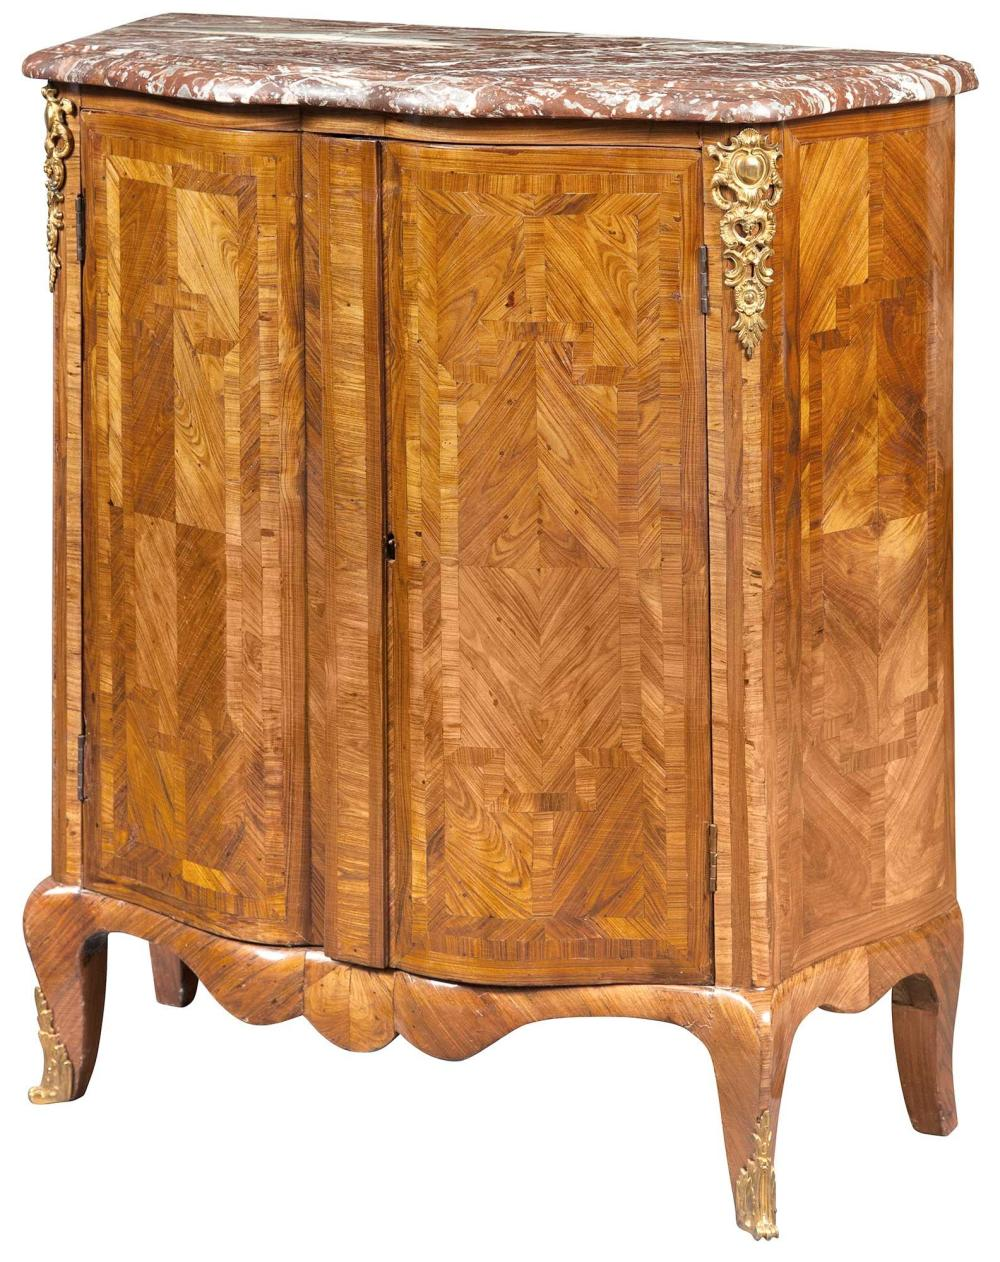 Louis XV/Louis XVI Transitional Gilt-Bronze-Mounted Tulipwood Parquetry Cabinet